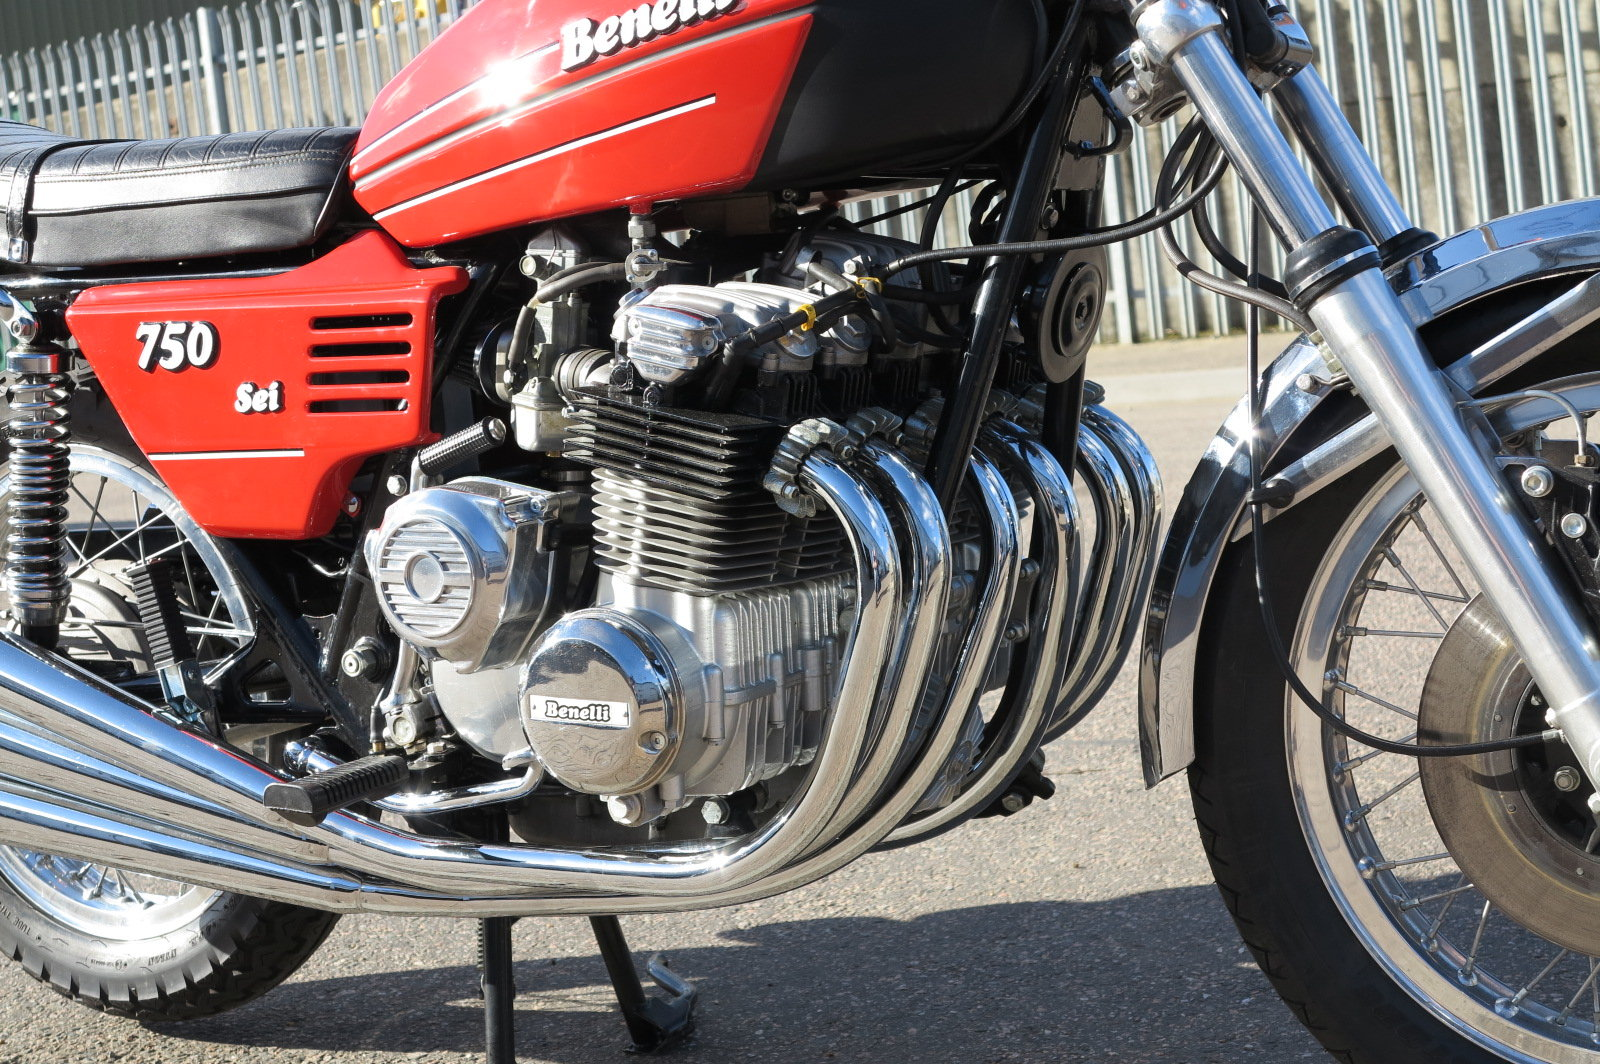 1976 BENELLI 750 SEI. VERY RARE INDEED,CONCOURS! For Sale (picture 3 of 6)